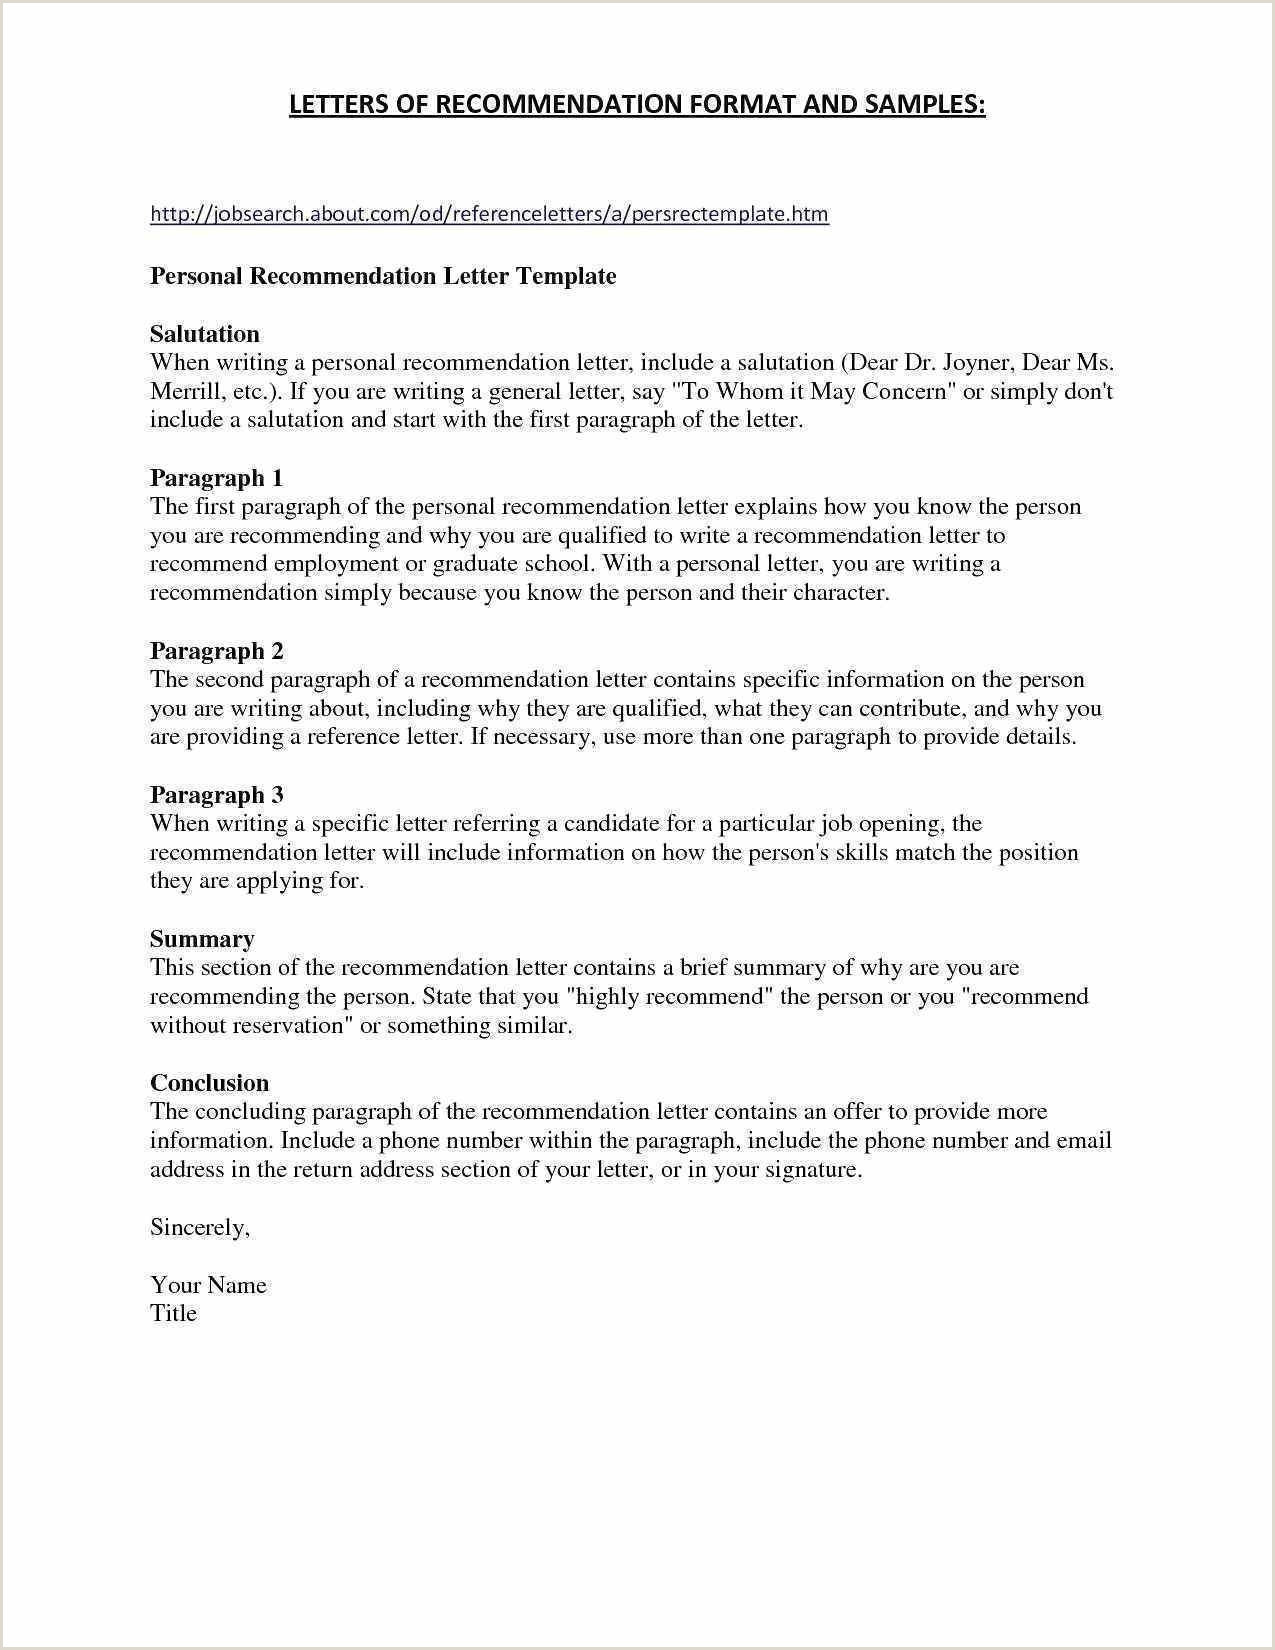 Resume for Receptionist with No Experience Unique 30